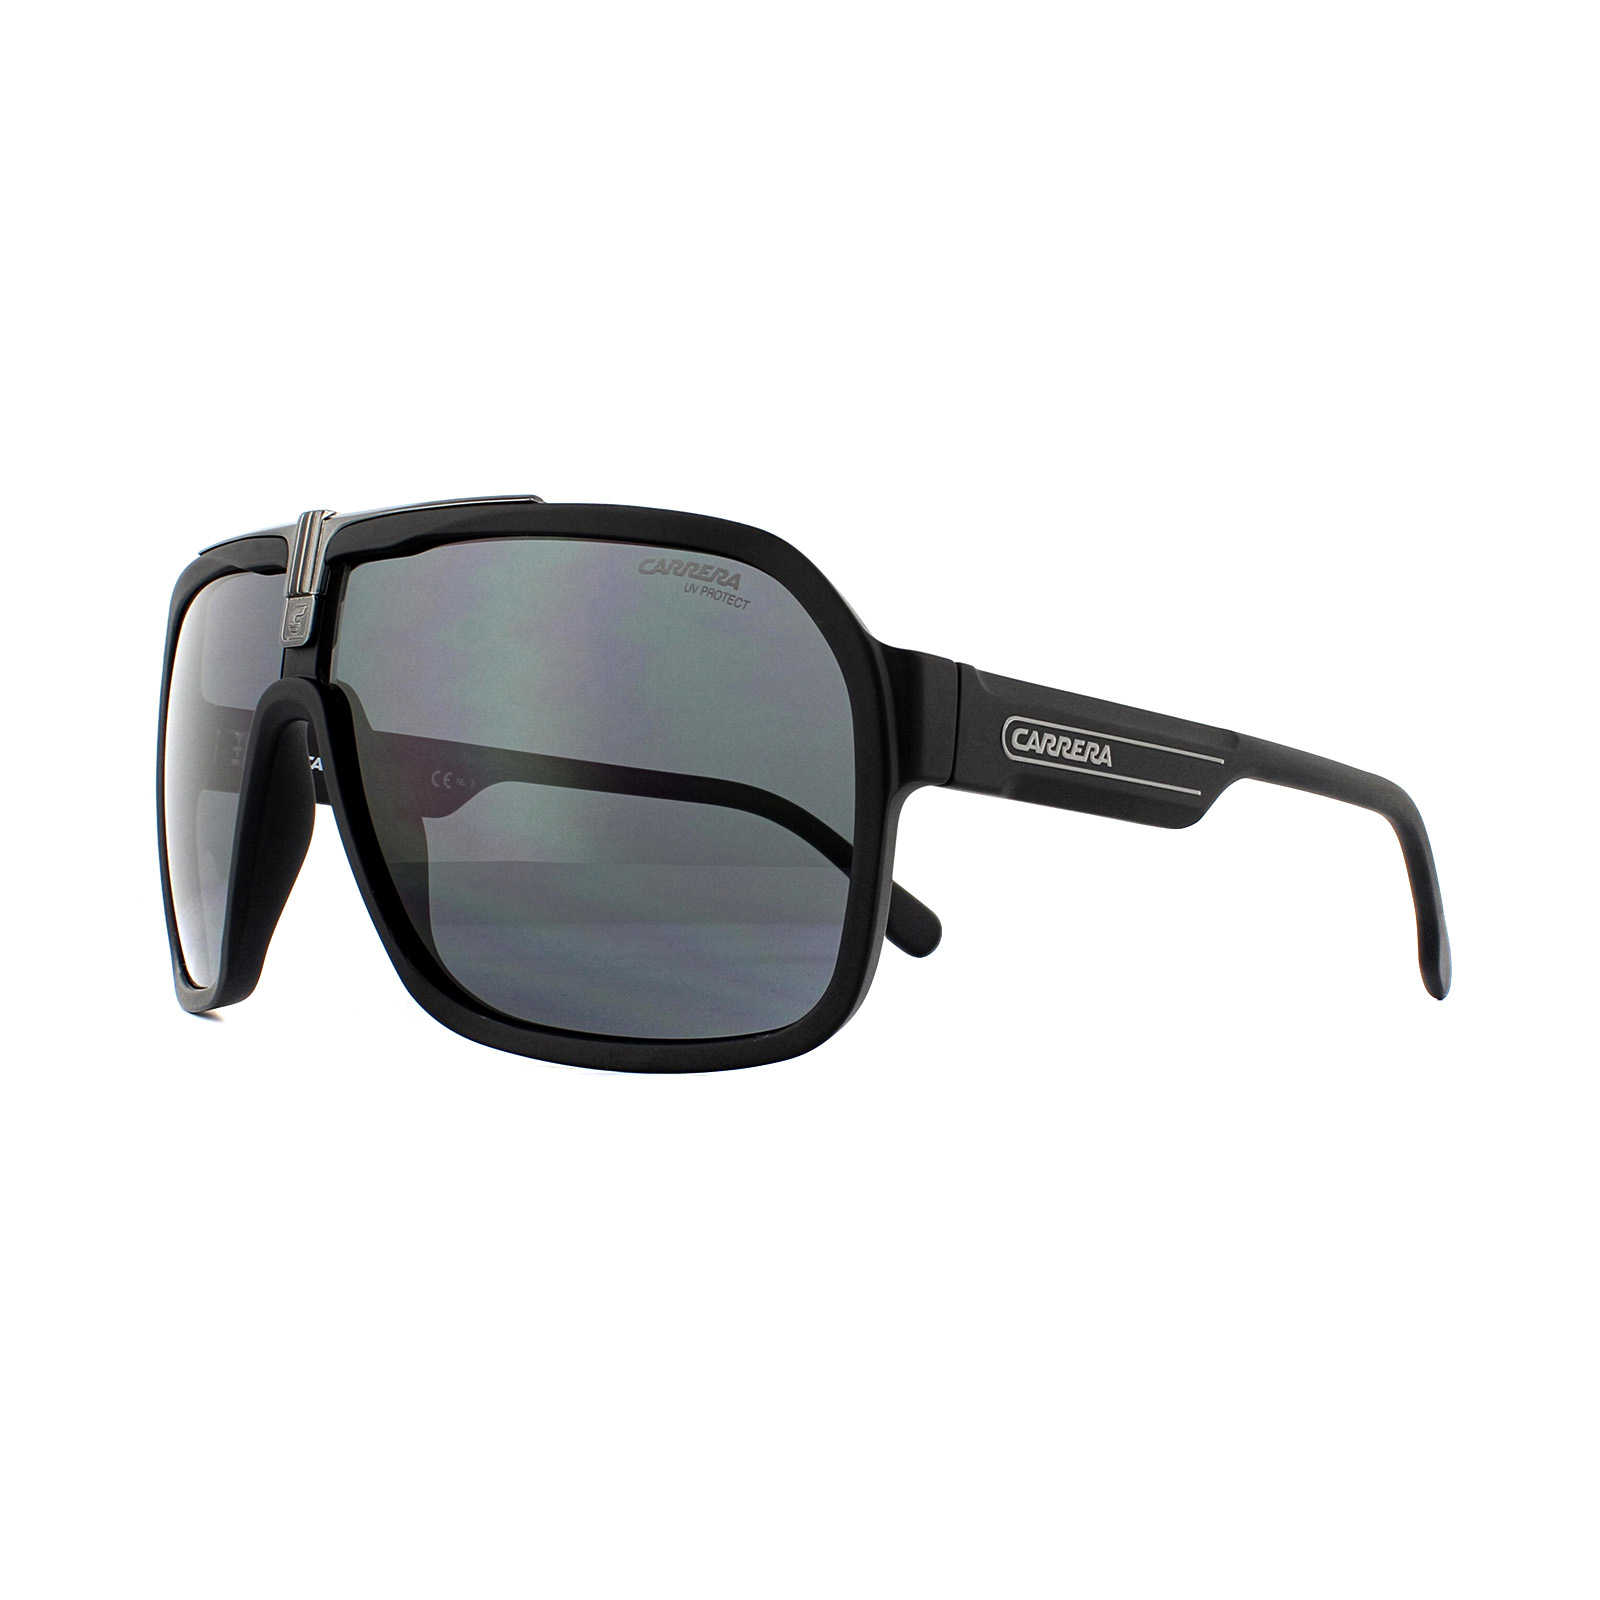 50281eaec Carrera Sunglasses 1014/S 003 2K Matte Black Grey 716736088907 | eBay